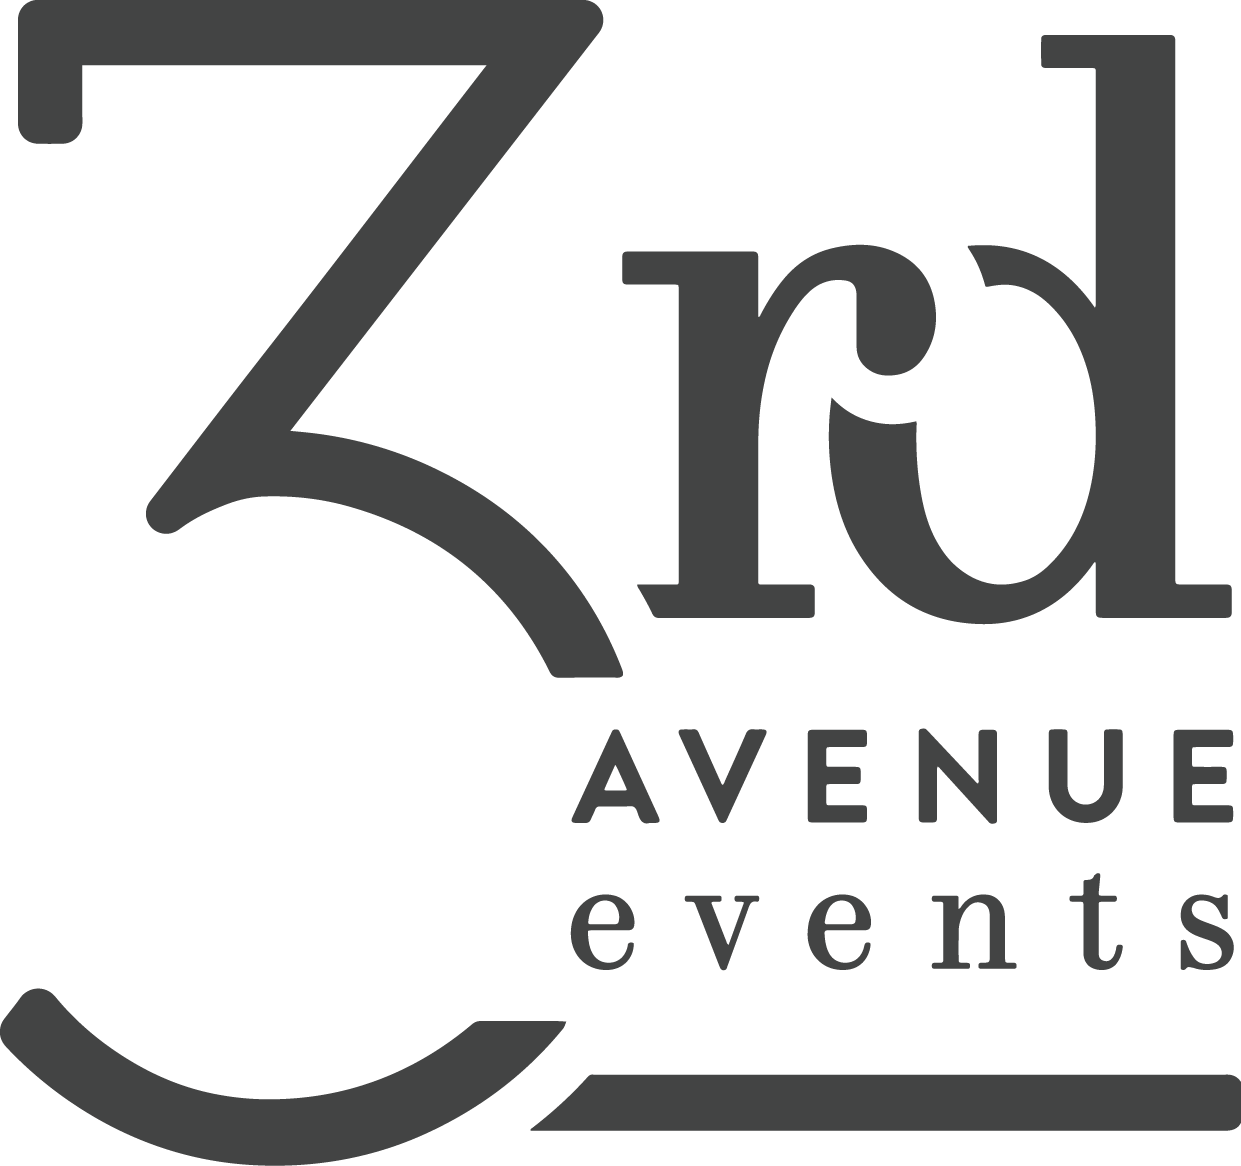 Third Avenue Events